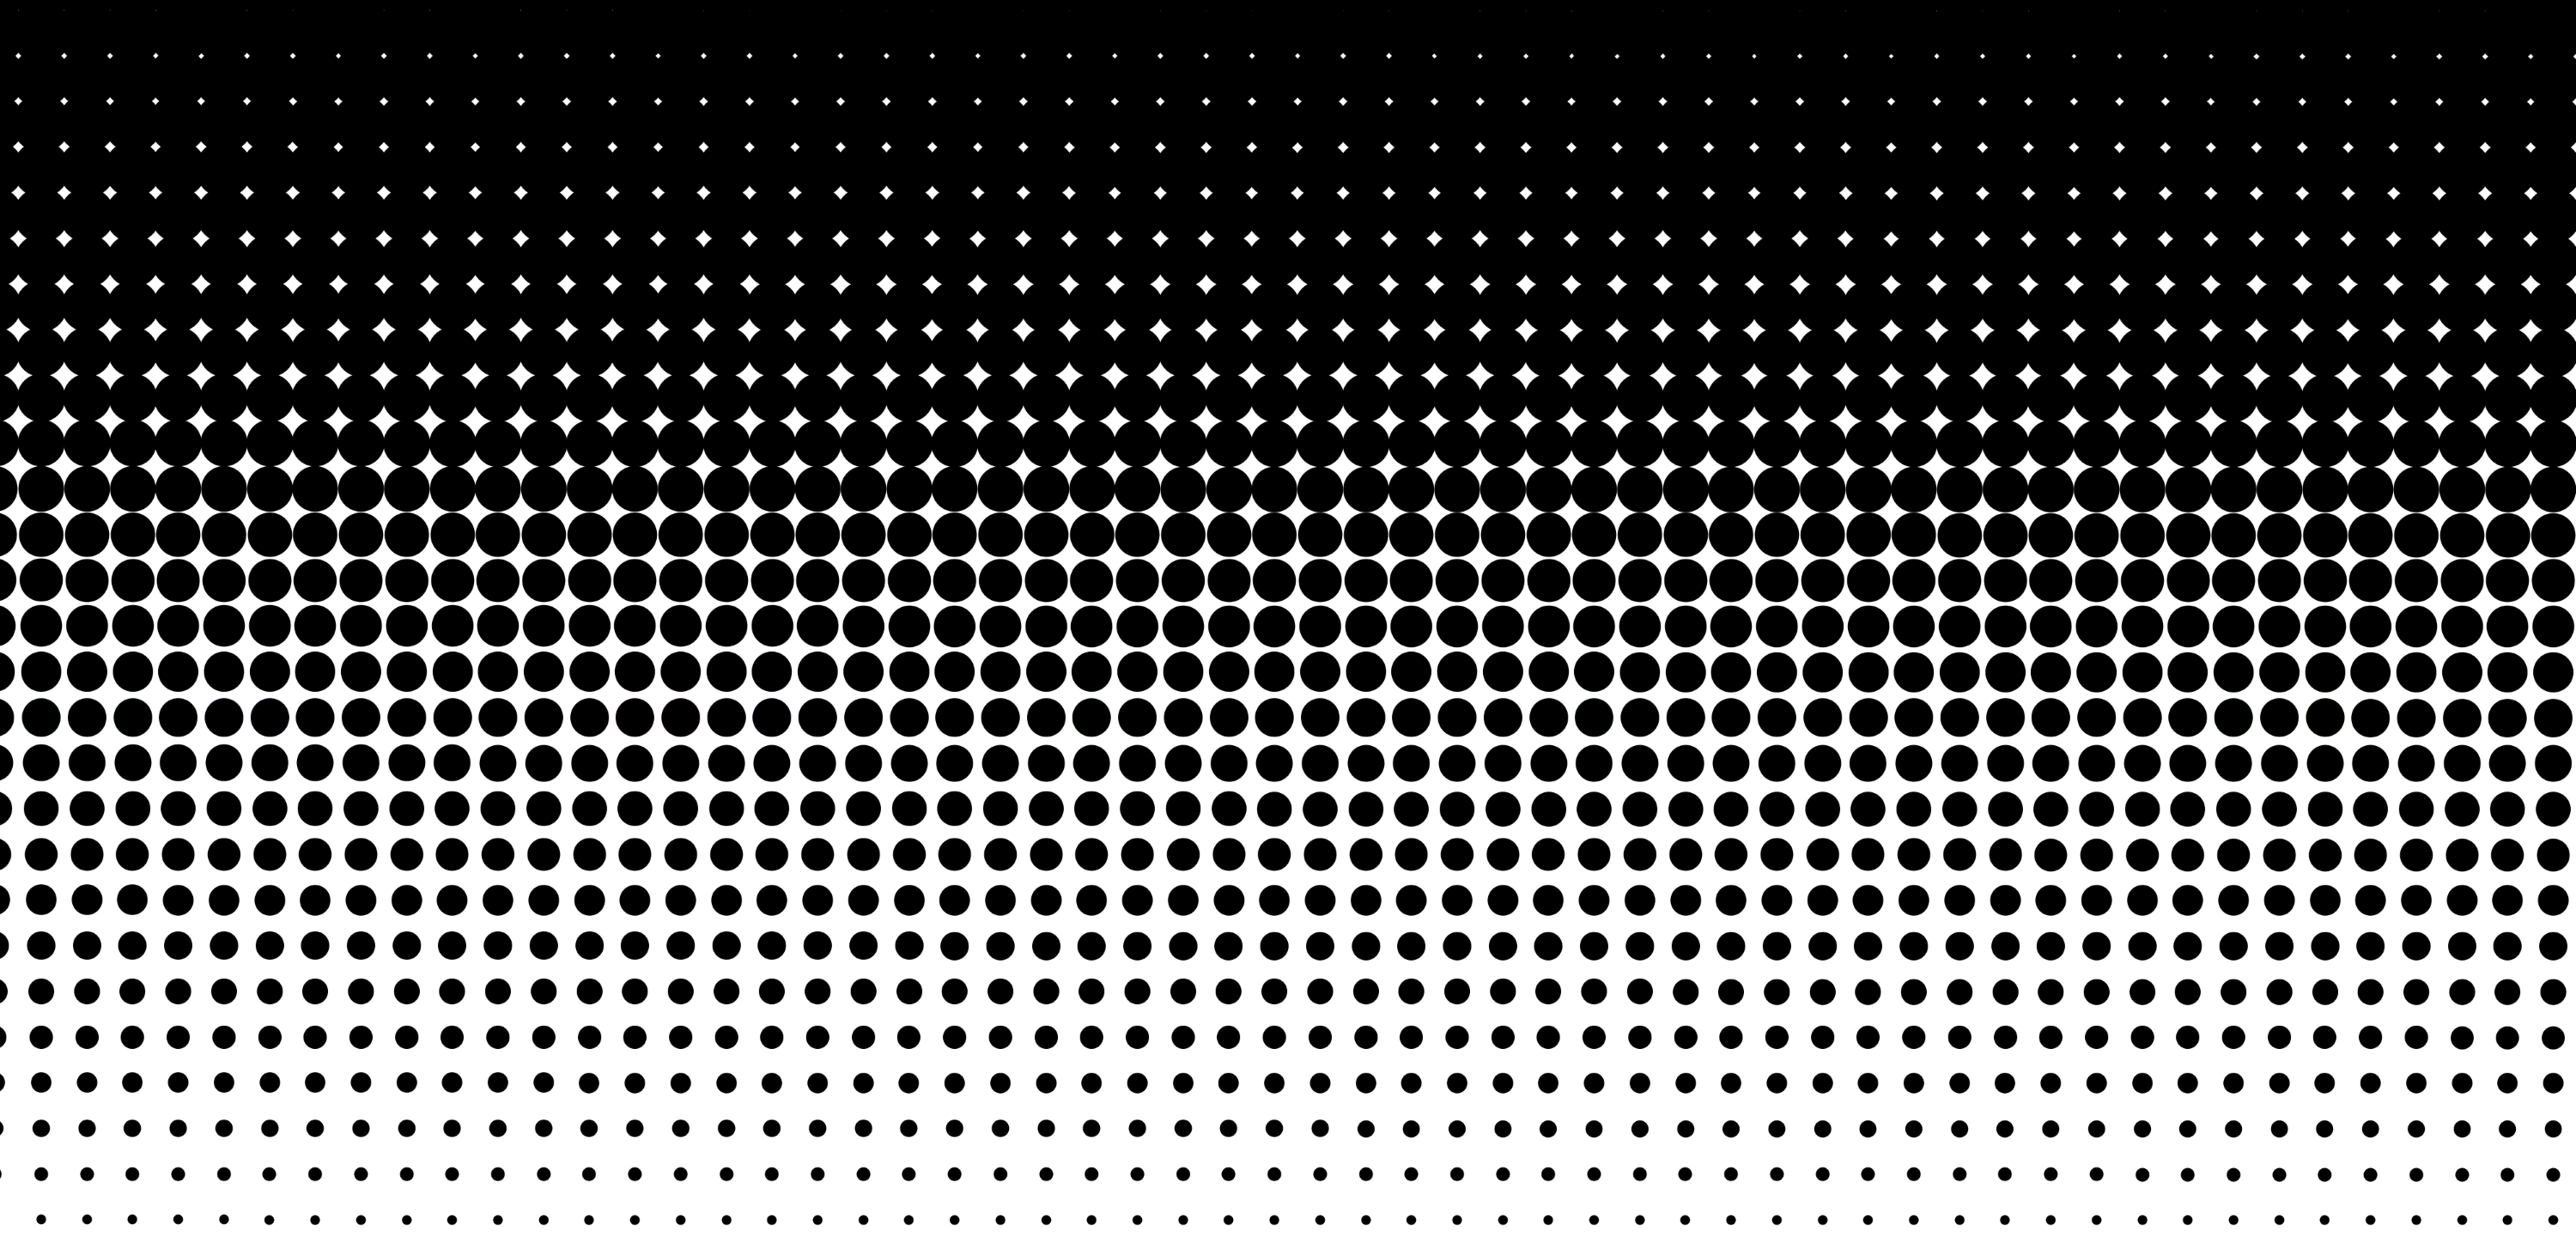 Black and White Halftone Background  Free Clip Art